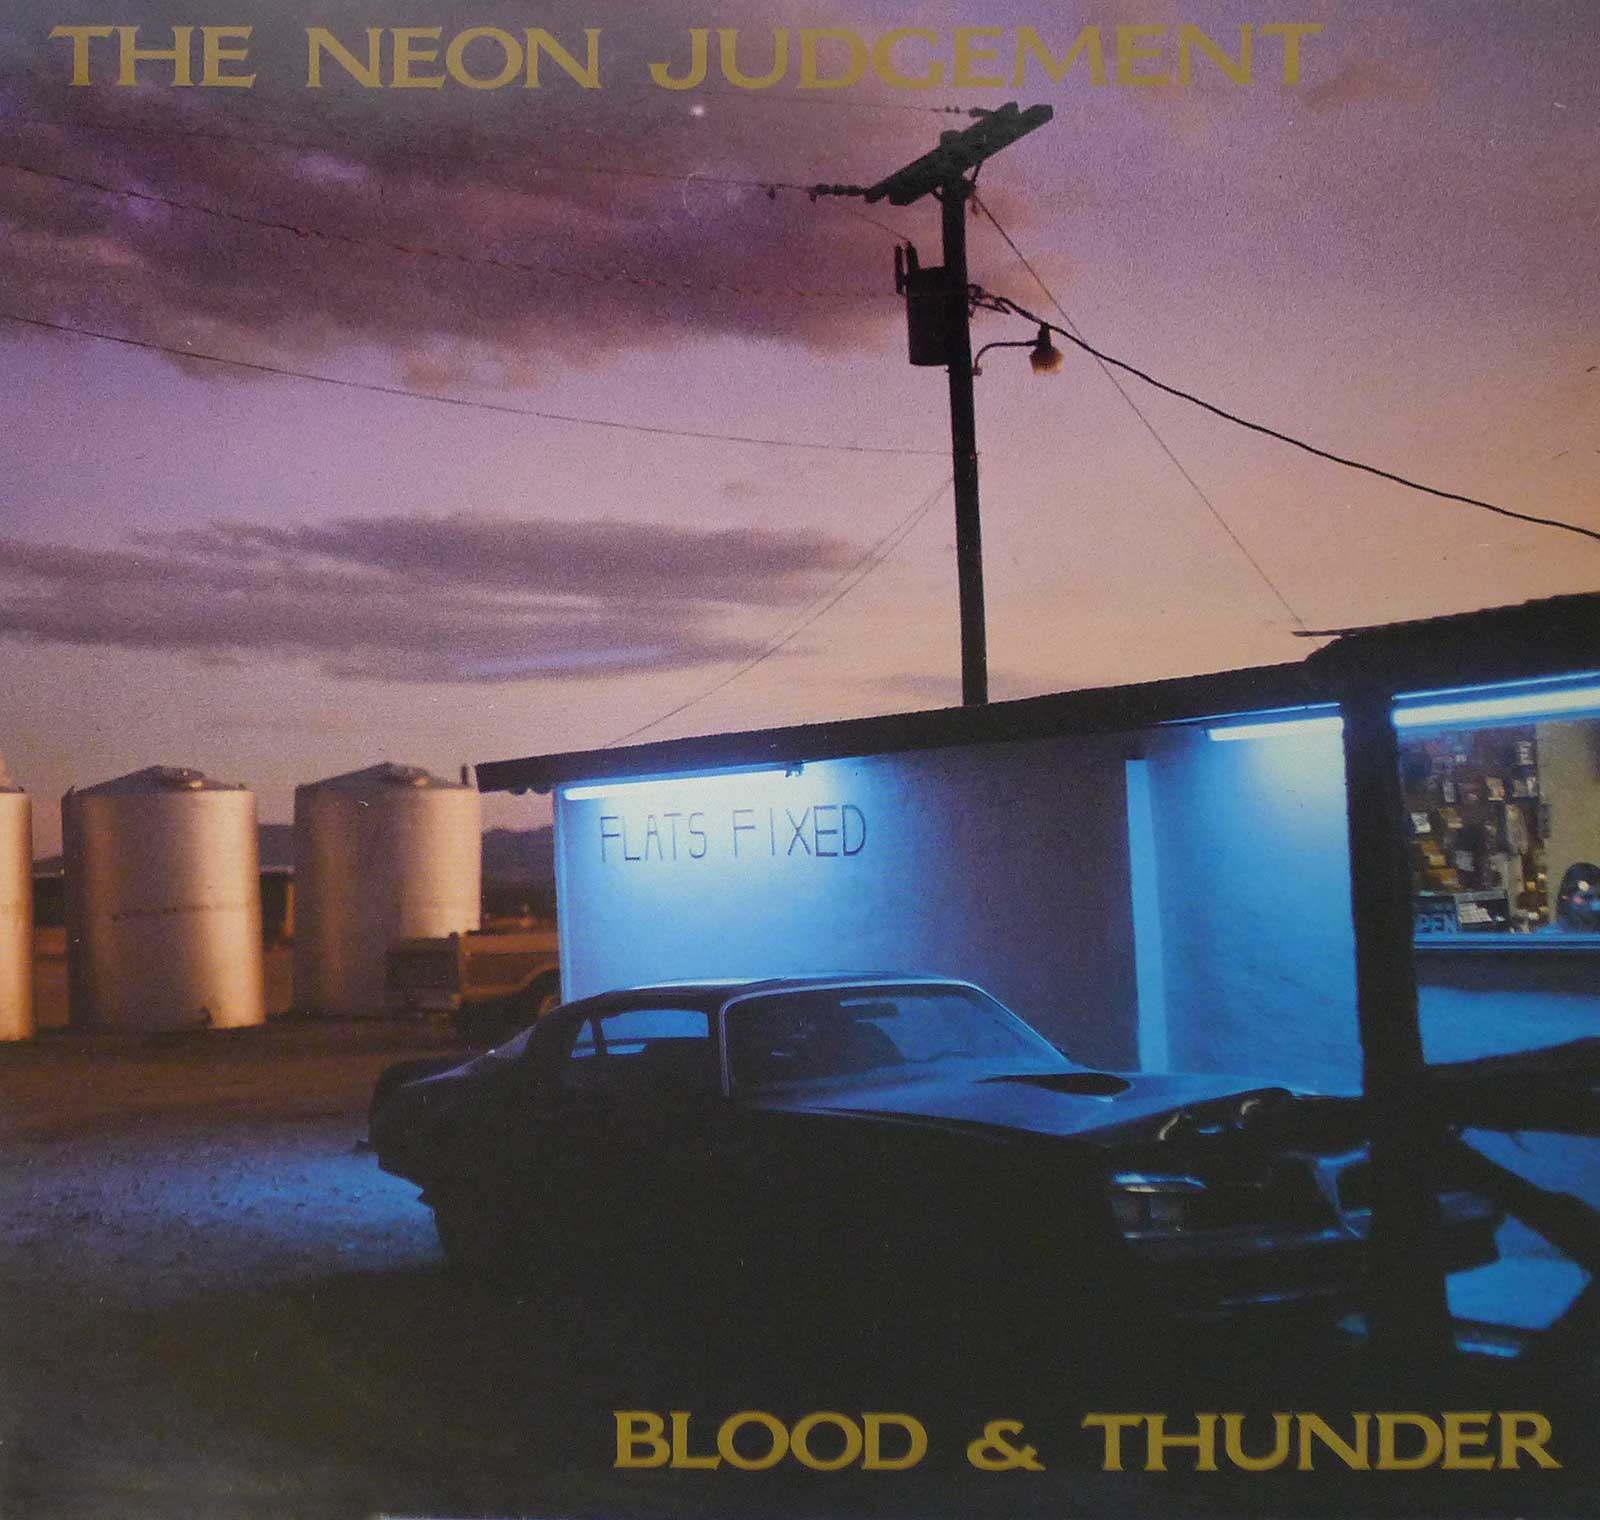 large photo of the album front cover of: neon judgement